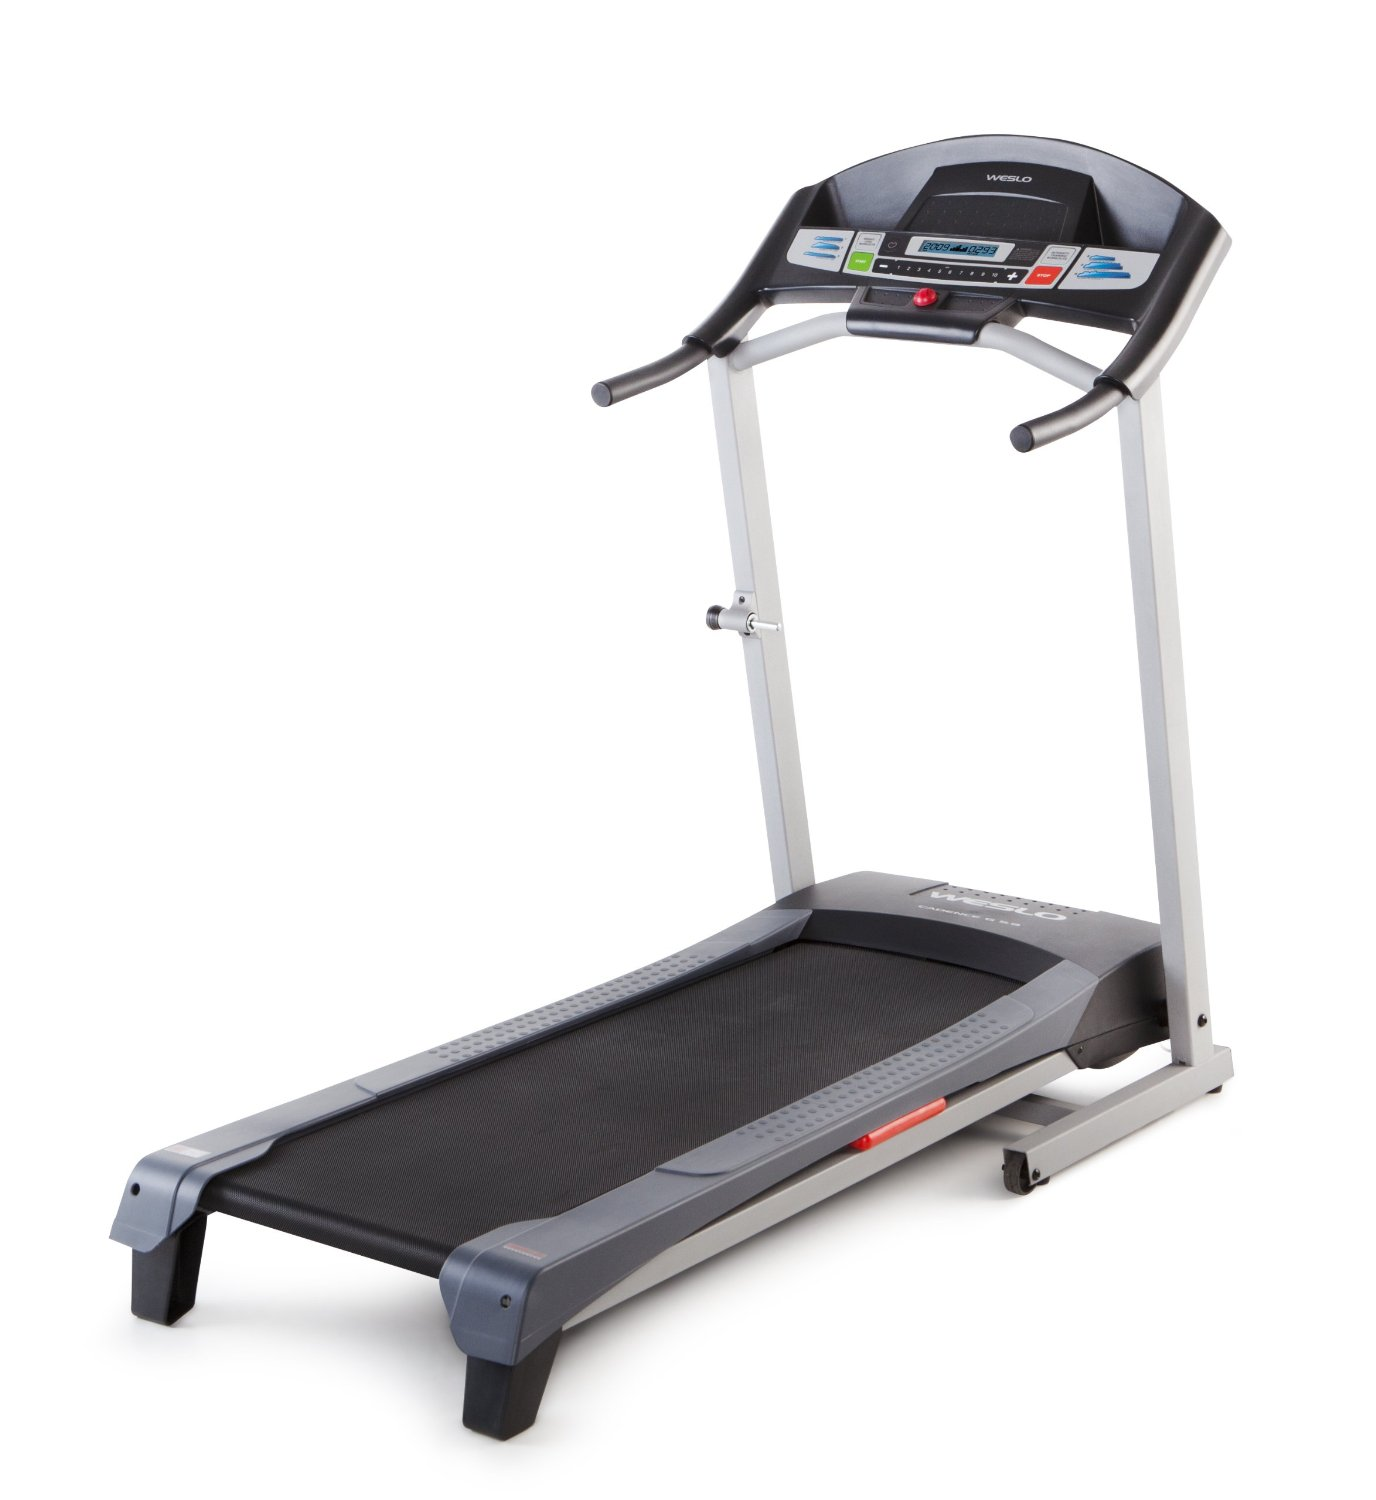 Best Treadmill For Your Home Reviews — Top 10 List in 2020